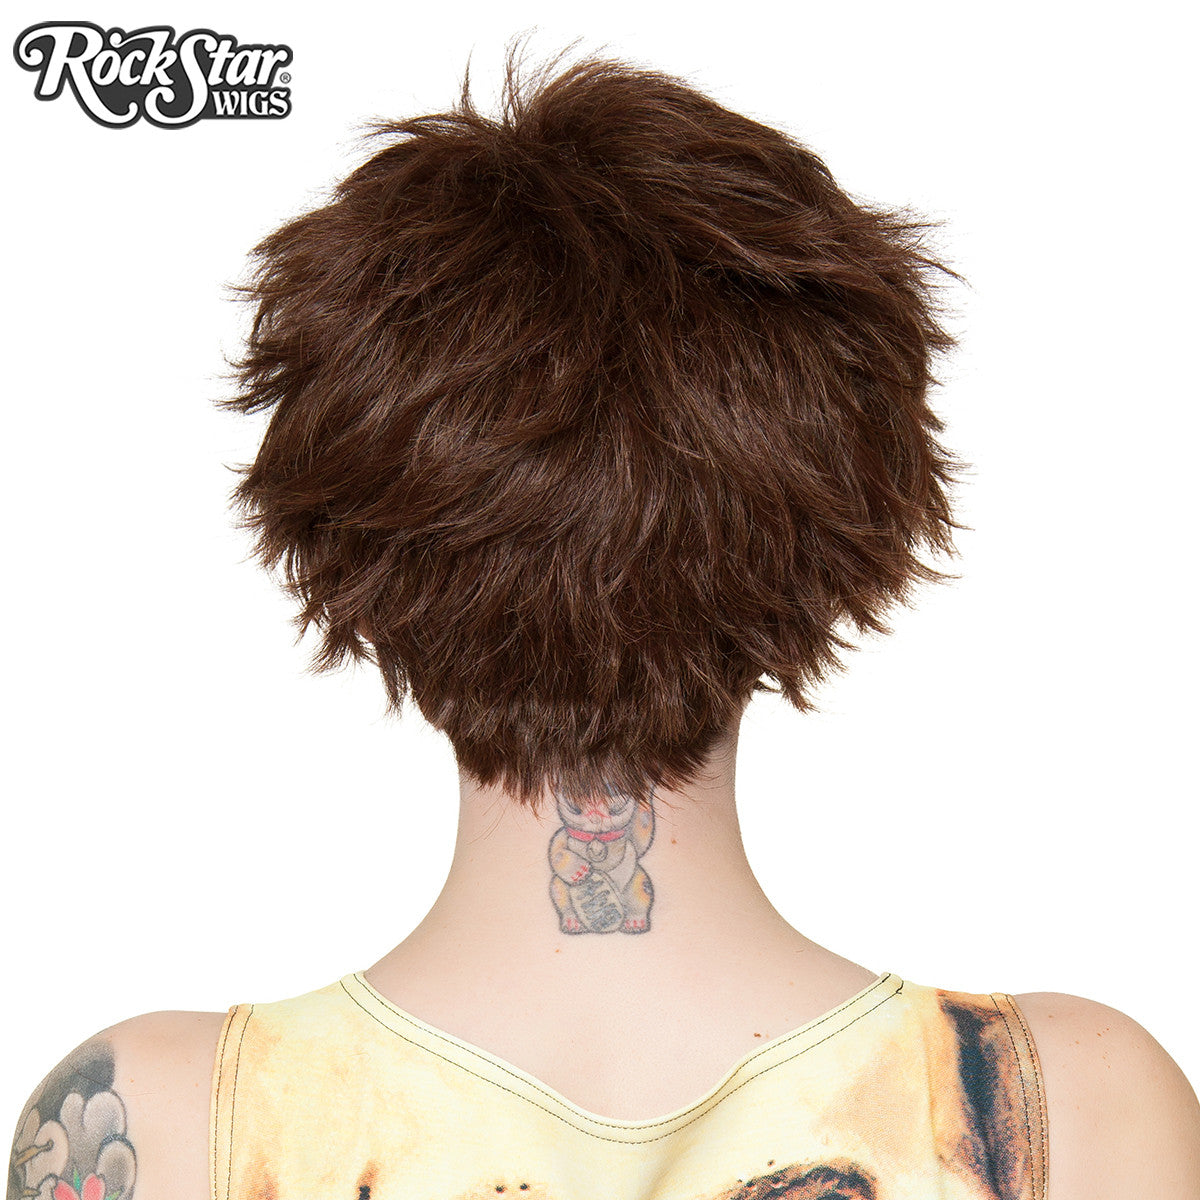 RockStar Wigs® Sassi Short - Brown -00555